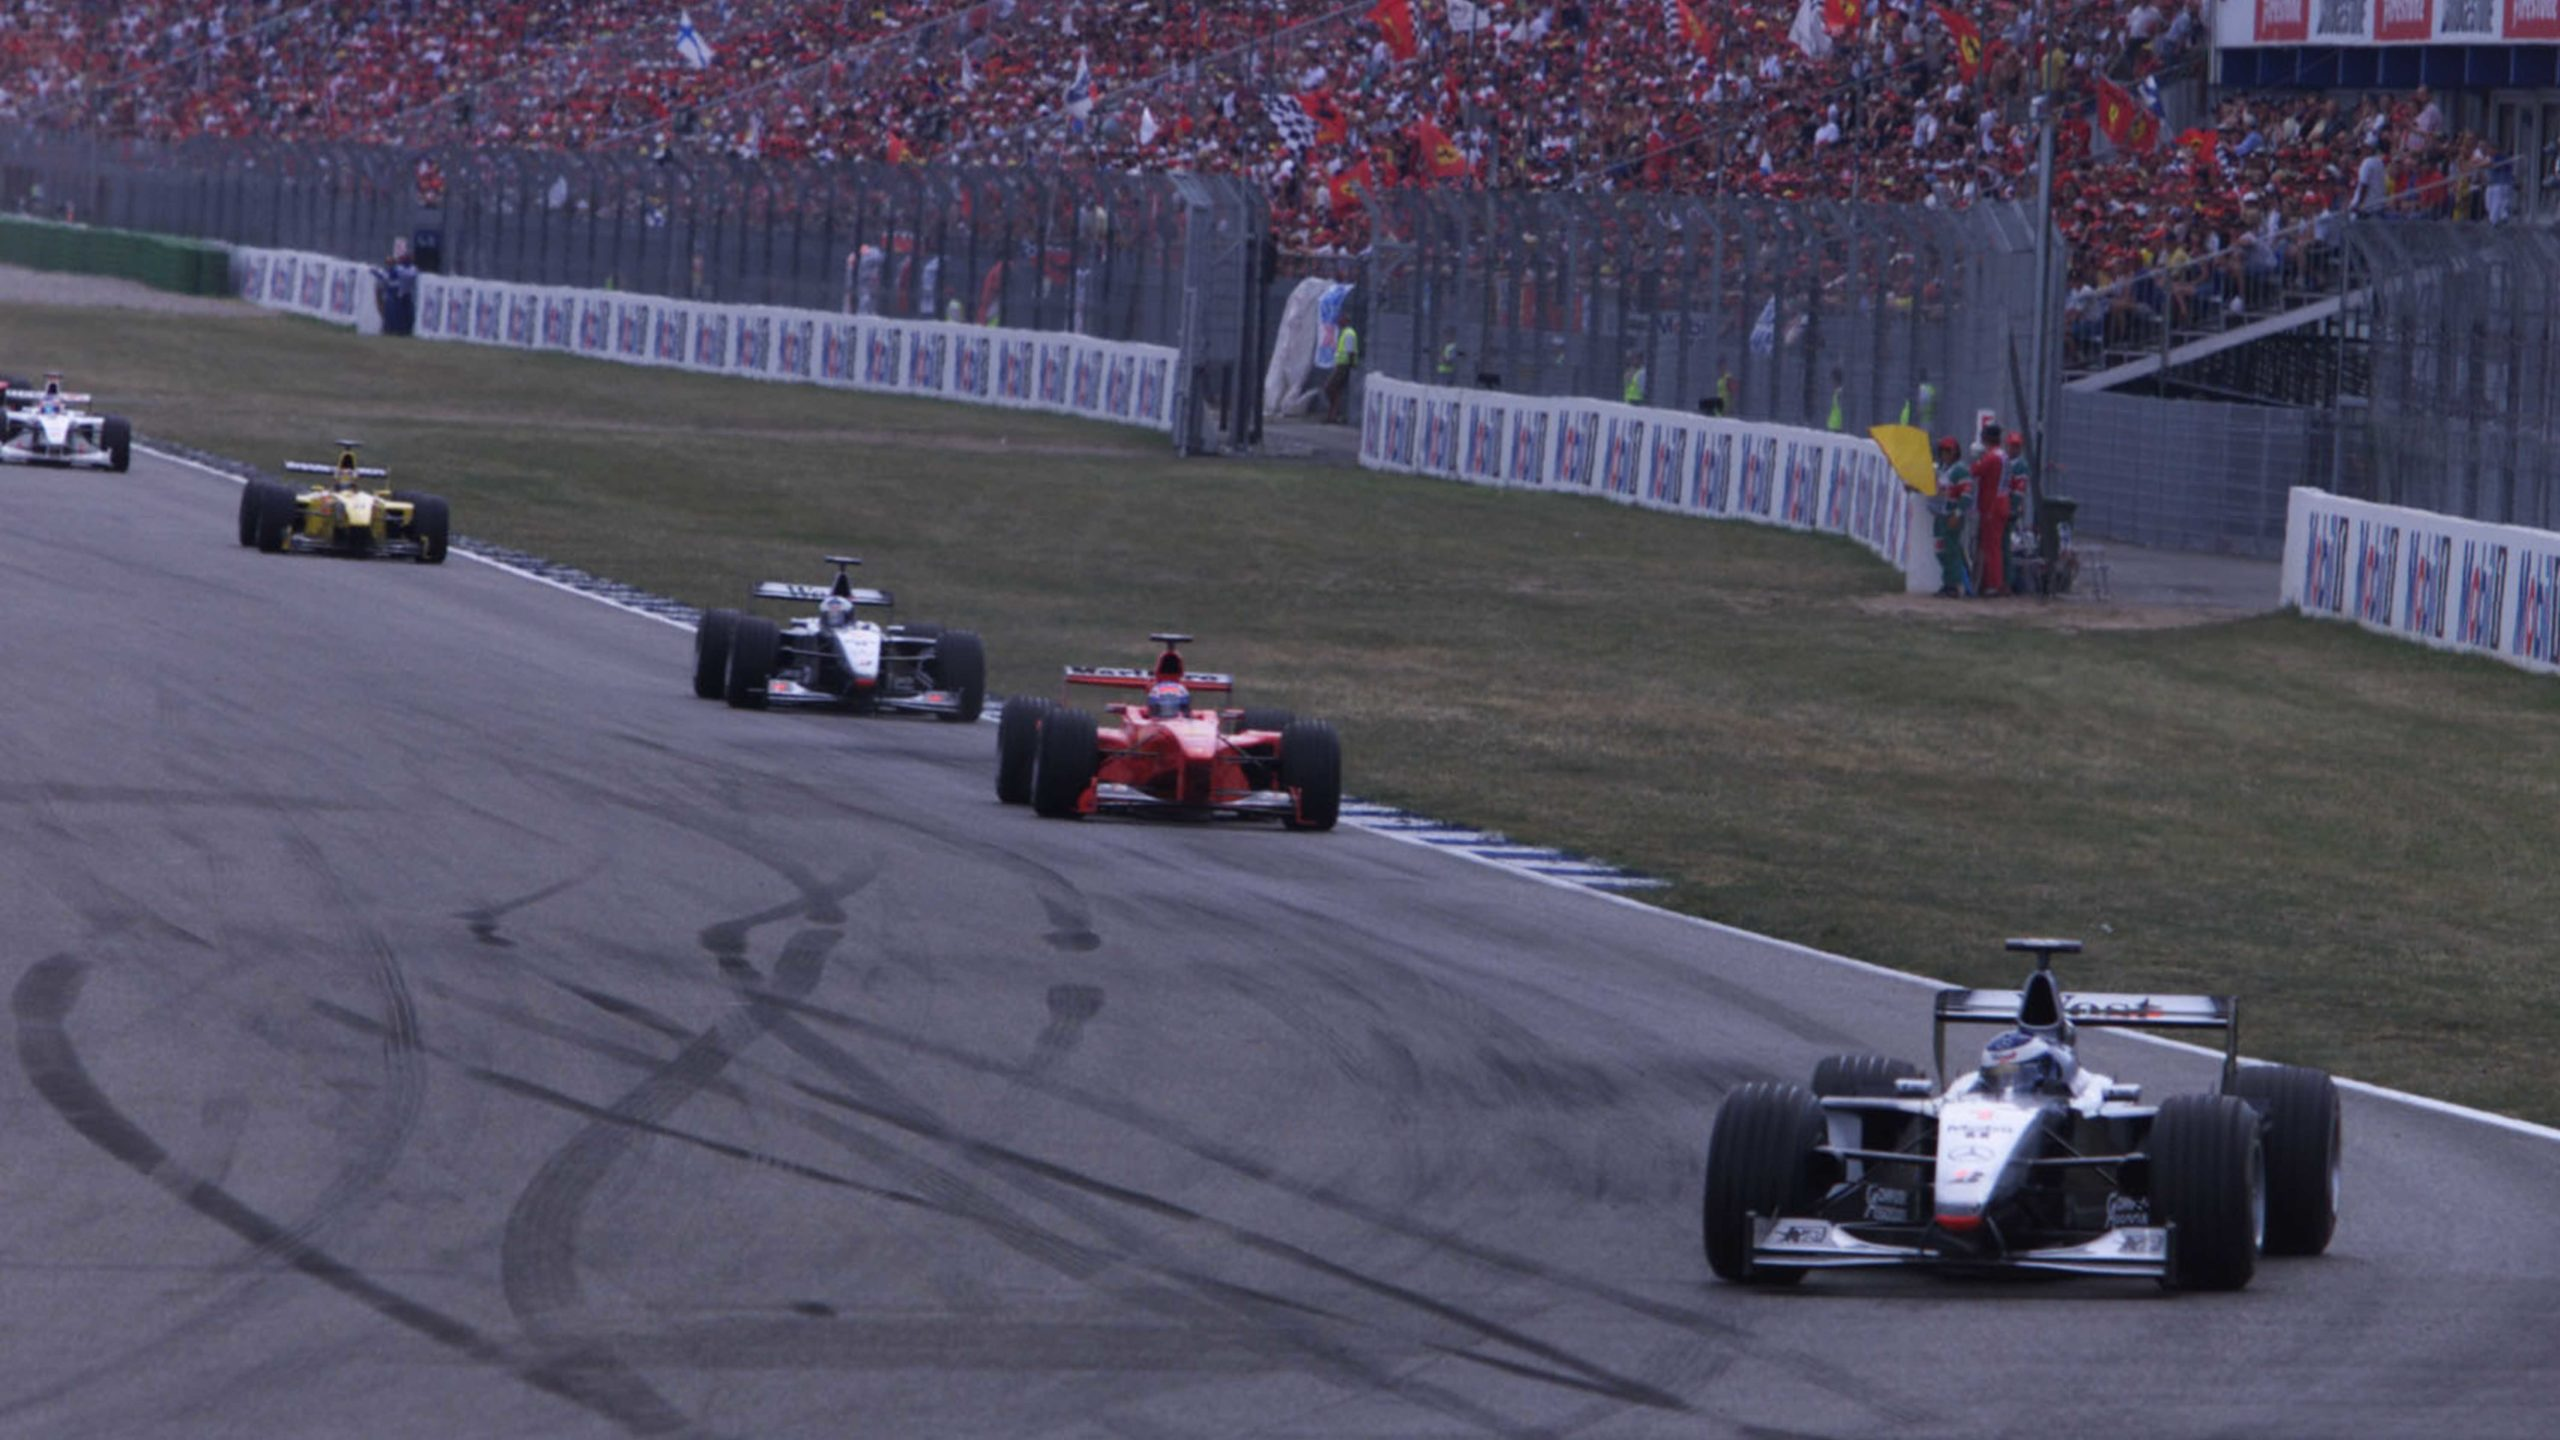 Mika Hakkinen leads Mika Salo in the early stages of the 1999 German Grand Prix